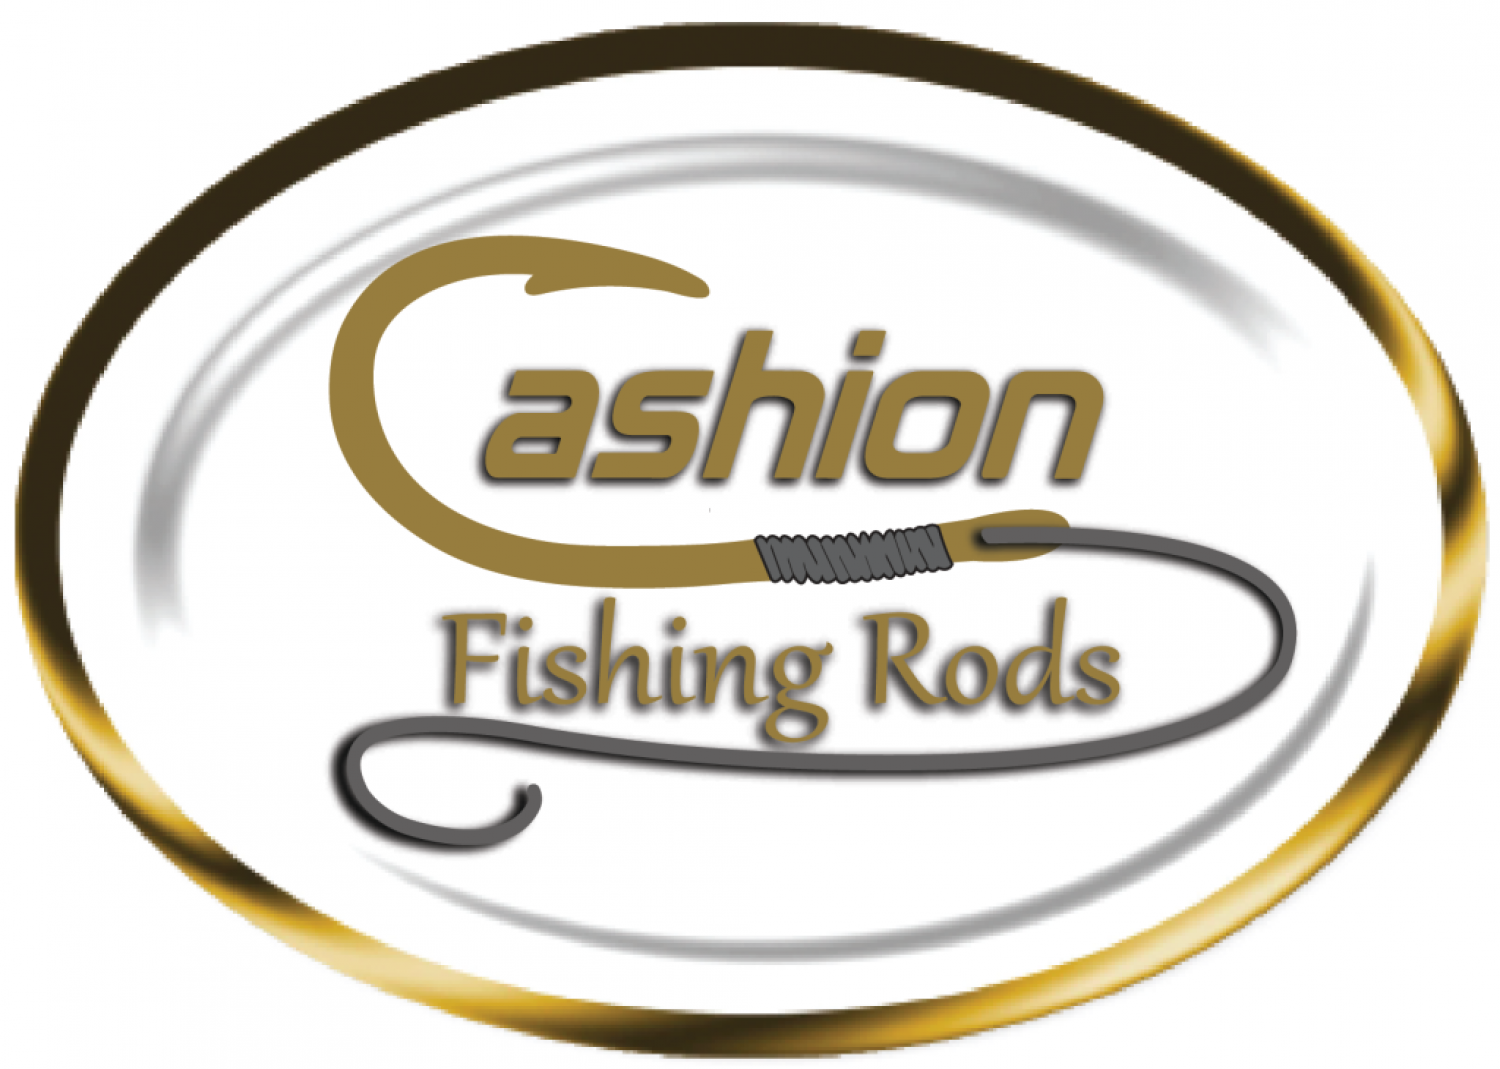 cashion-rods-logo-1024x730